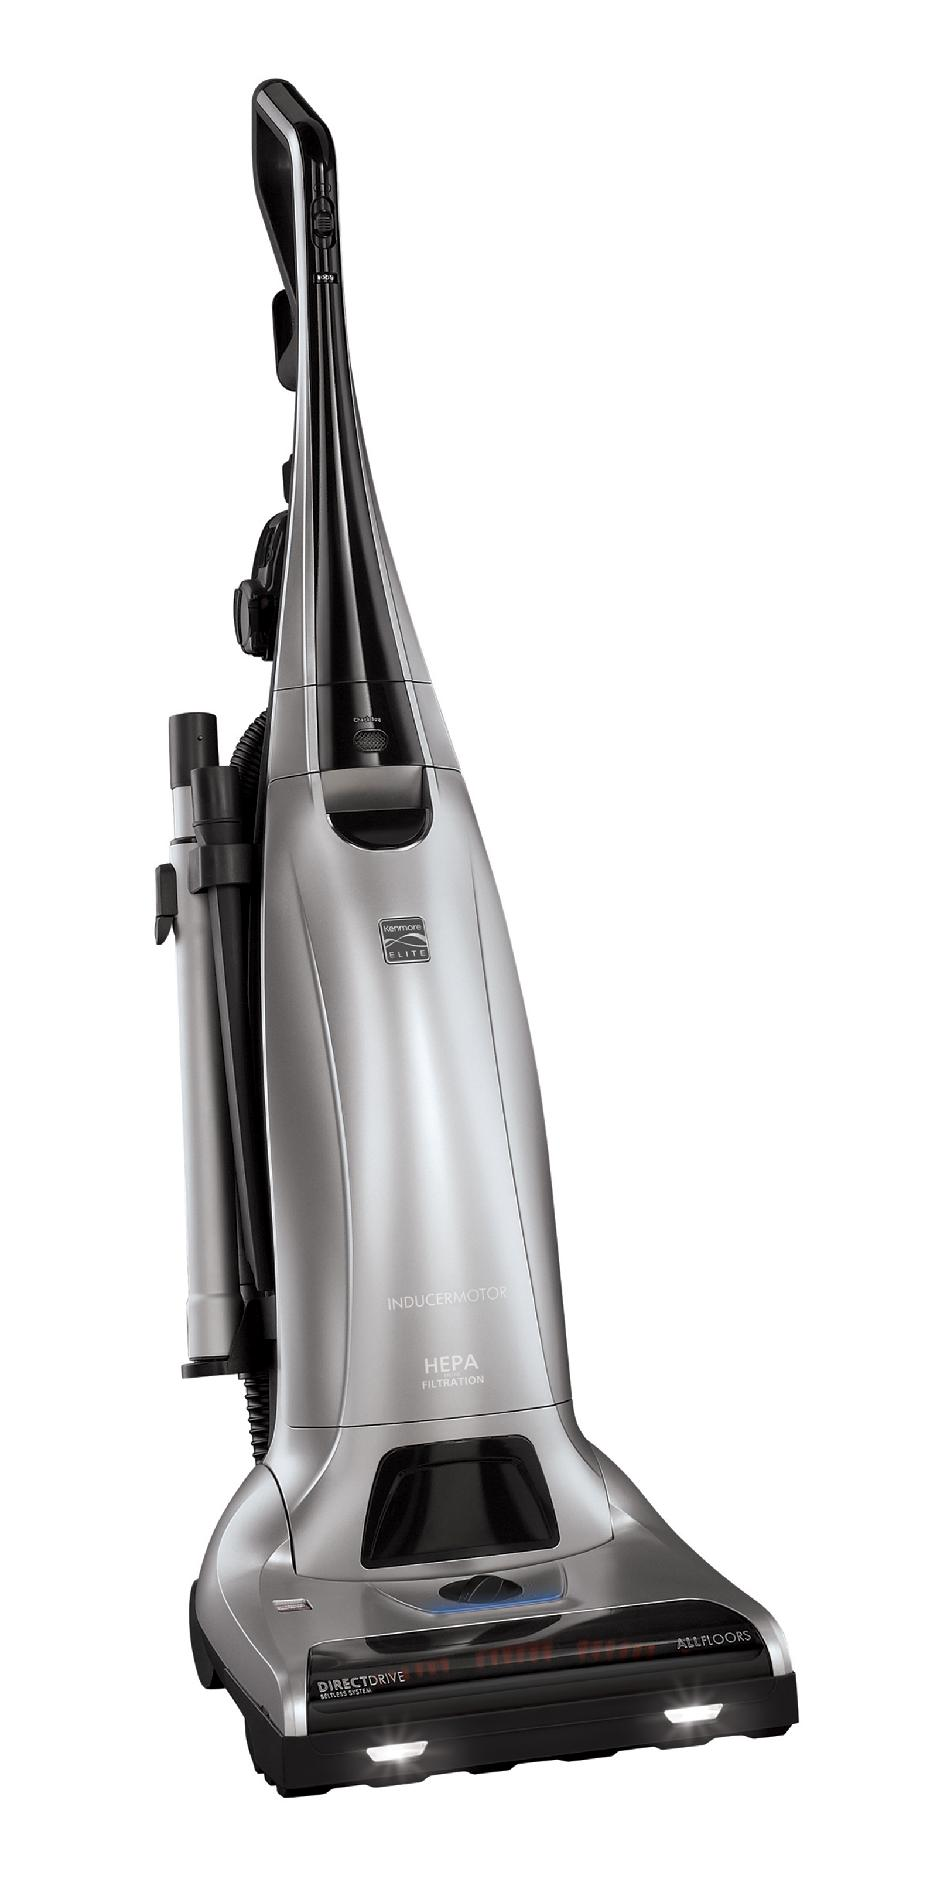 Kenmore Elite 31150 Bagged Upright Vacuum Cleaner - Silver